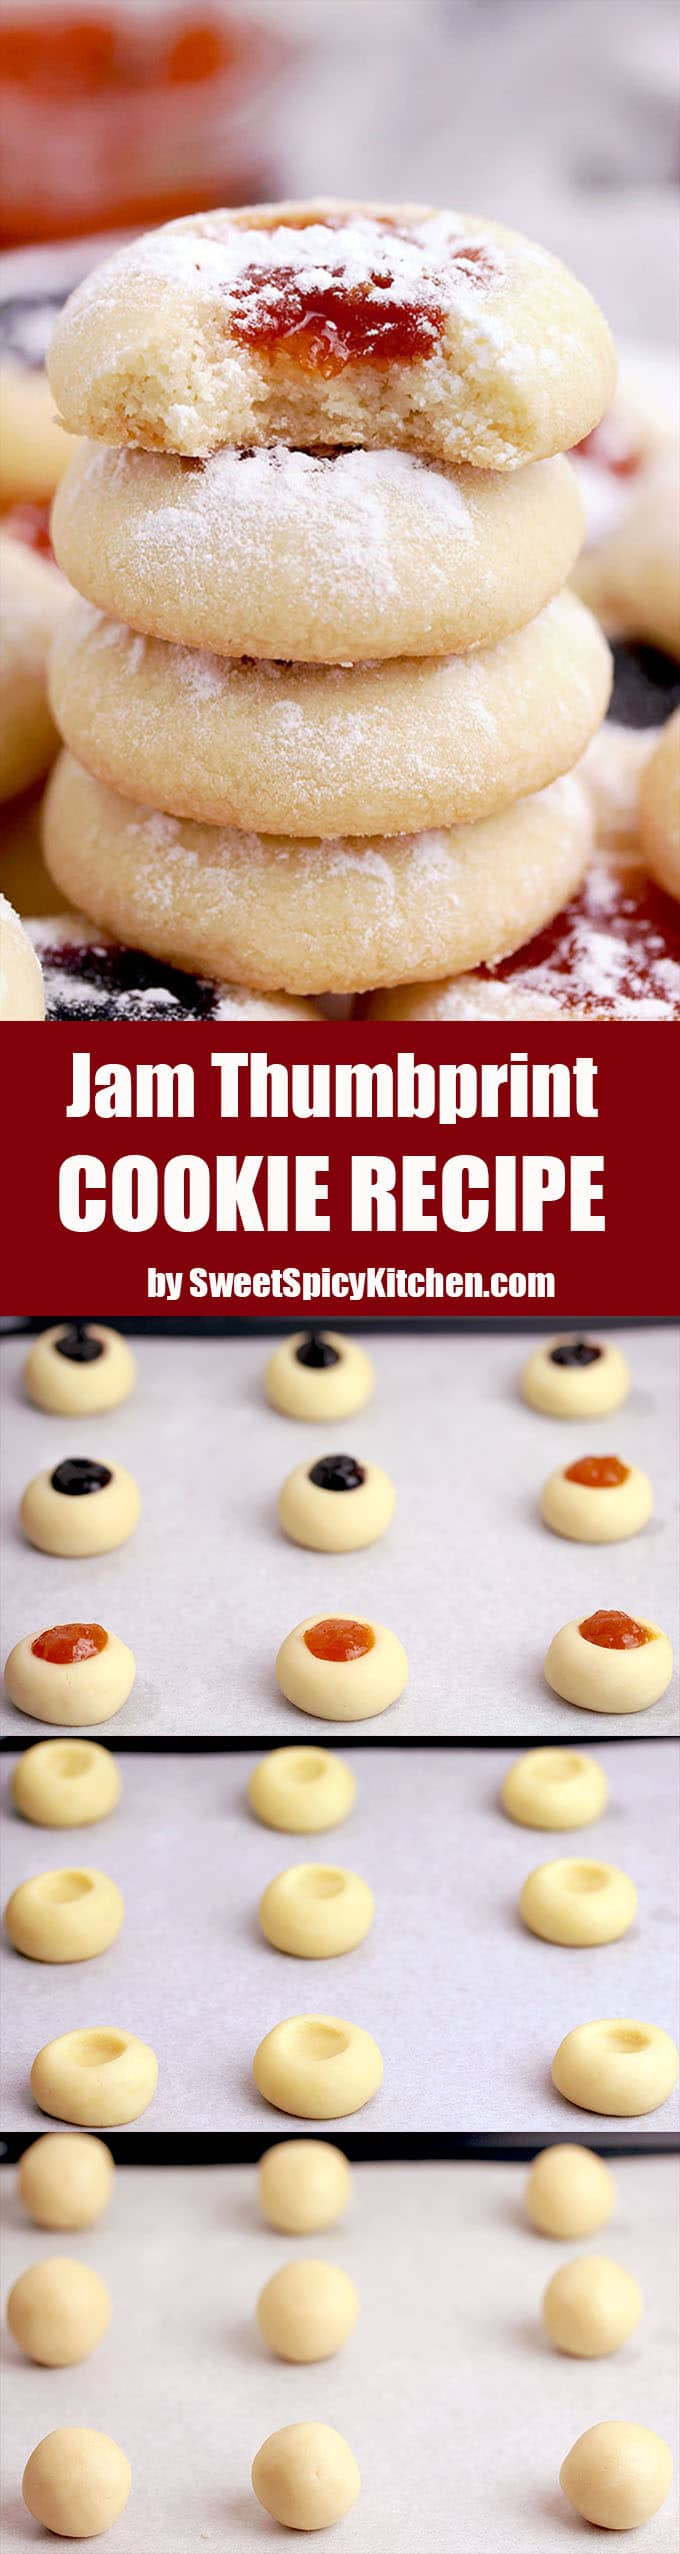 Jam Thumbprint Cookie Recipe – these quick and easy, simple, old – fashioned thumbprint cookies, that are made from a few simple ingredients and have jam inside, are the Christmas cookies that mustn't be forgotten